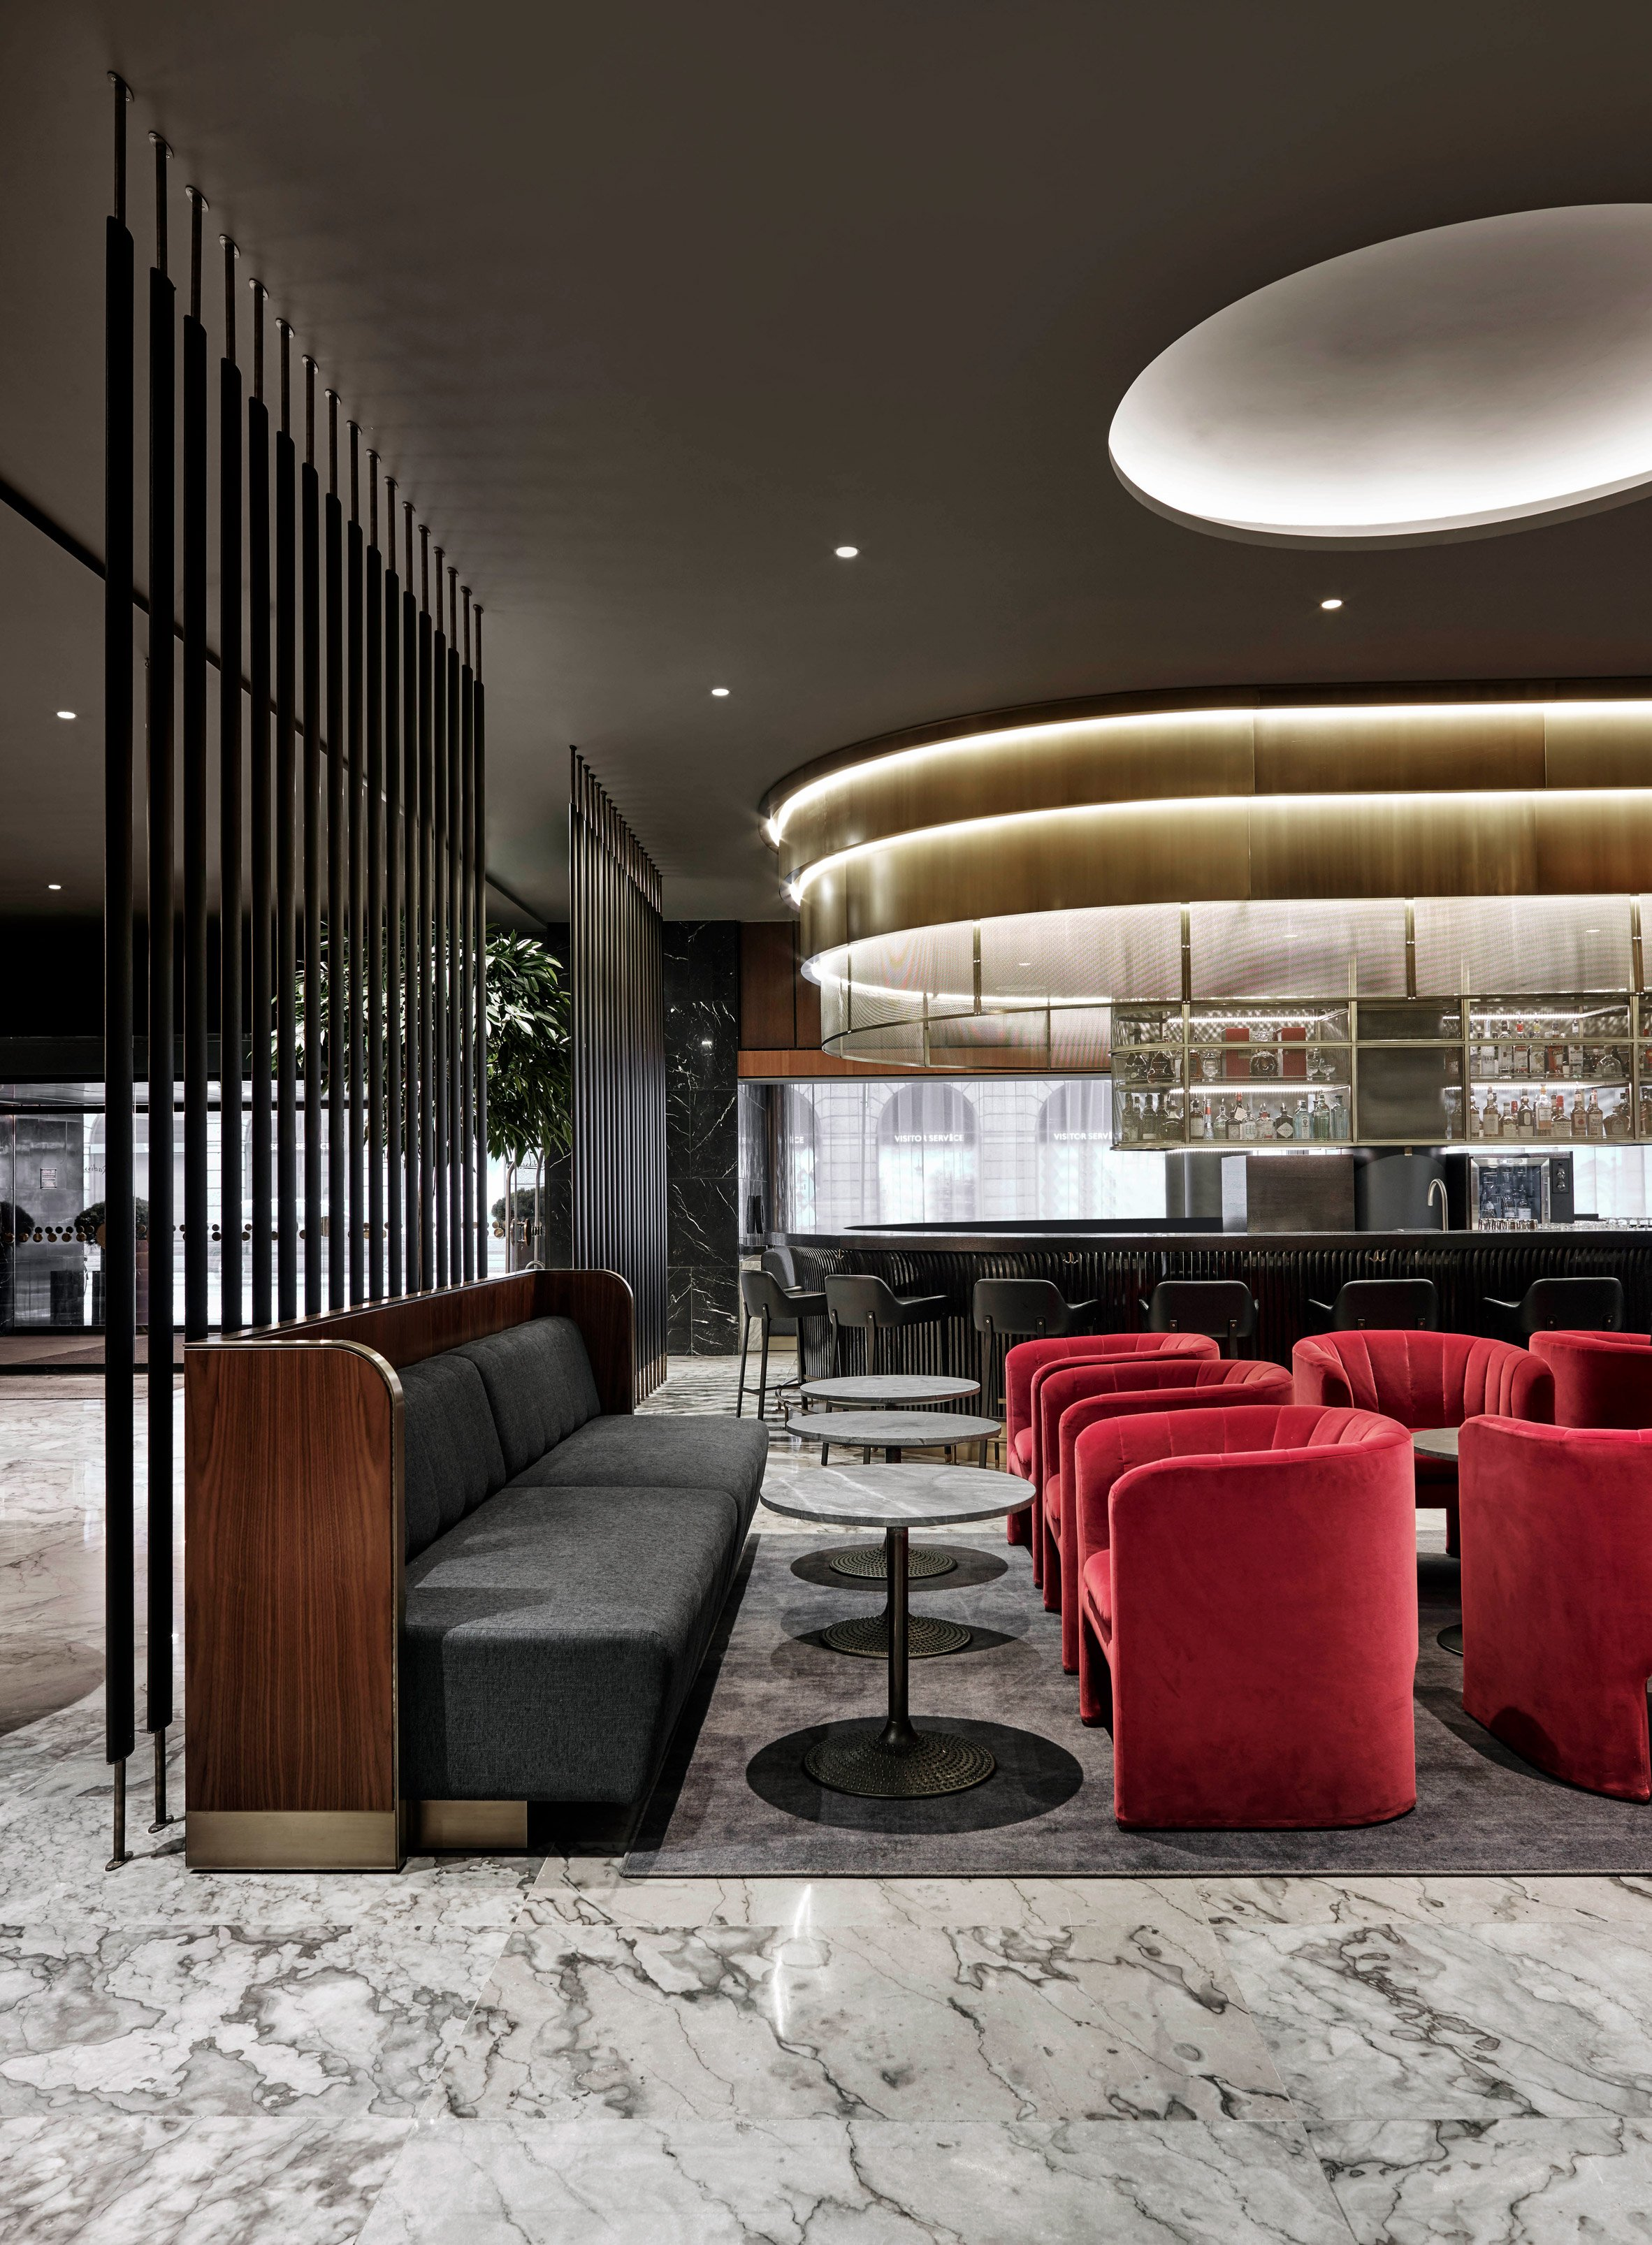 space copenhagen renovates landmark arne jacobsen hotel using updated classic furniture. Black Bedroom Furniture Sets. Home Design Ideas